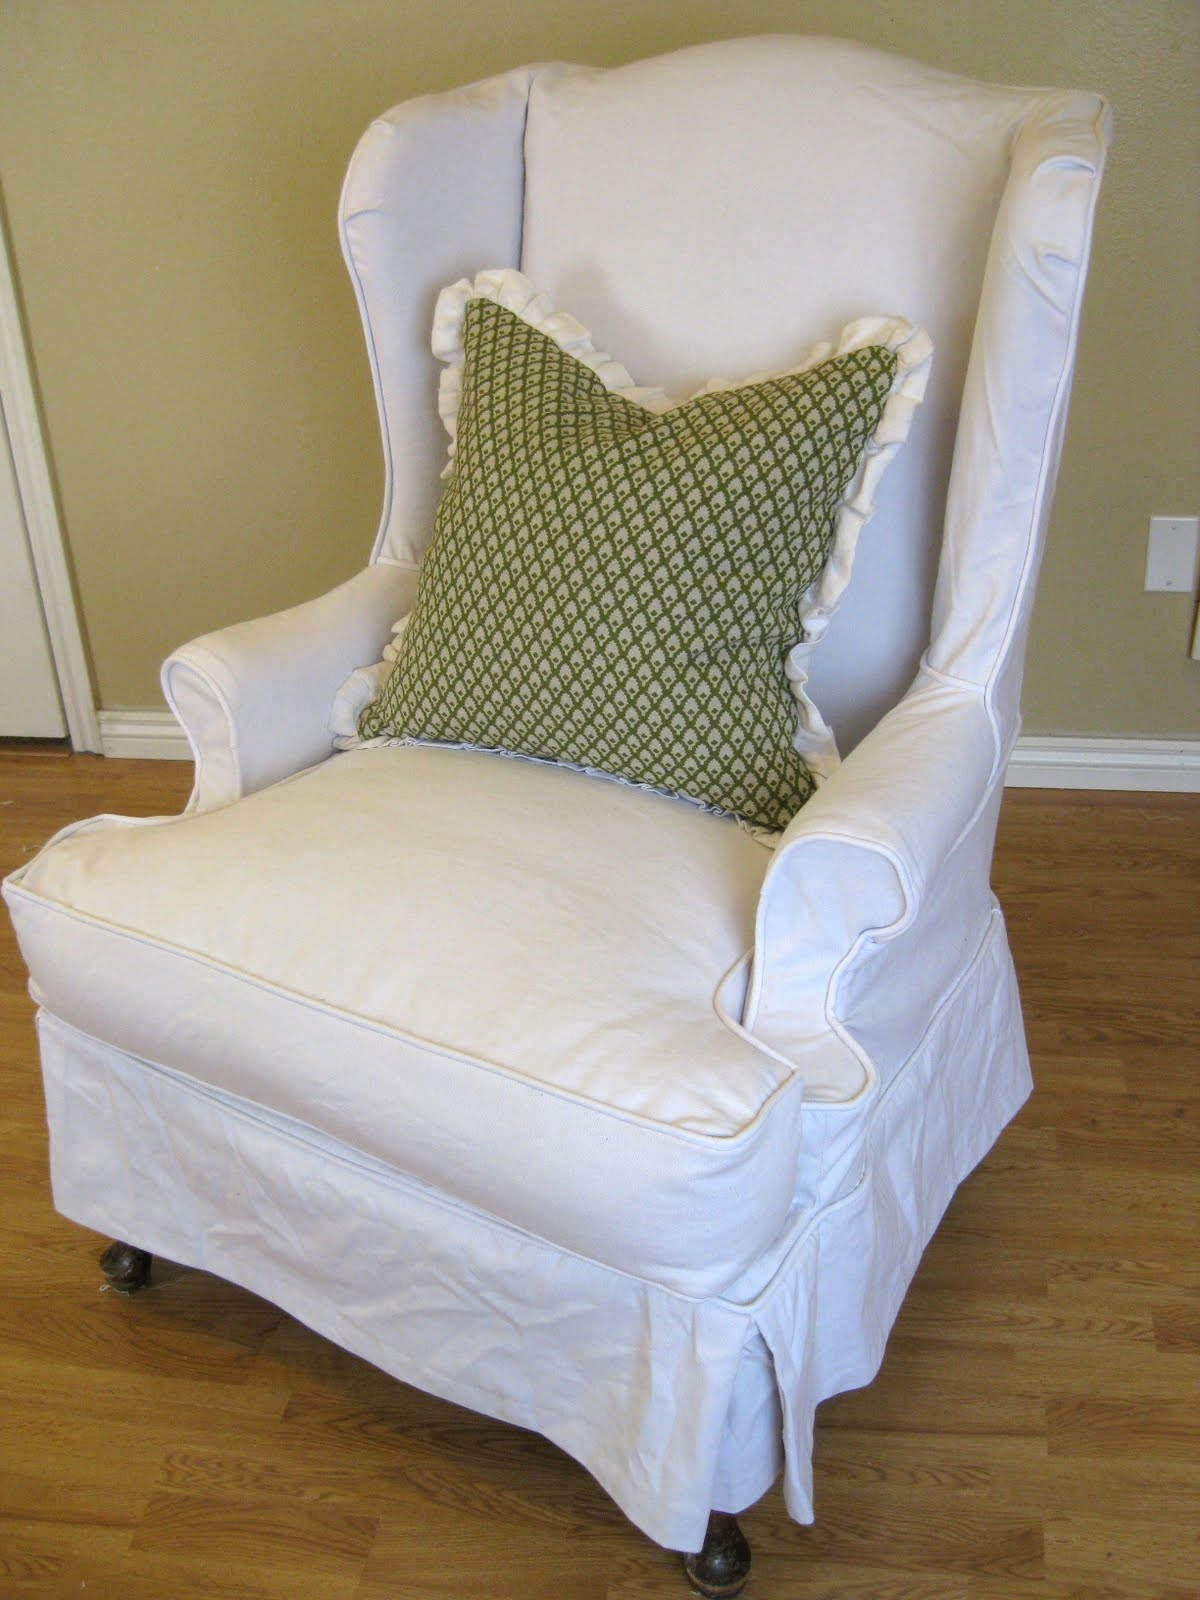 Slip Cover For Chair In White With Pretty Cushions And Wooden Floor Home Ideas